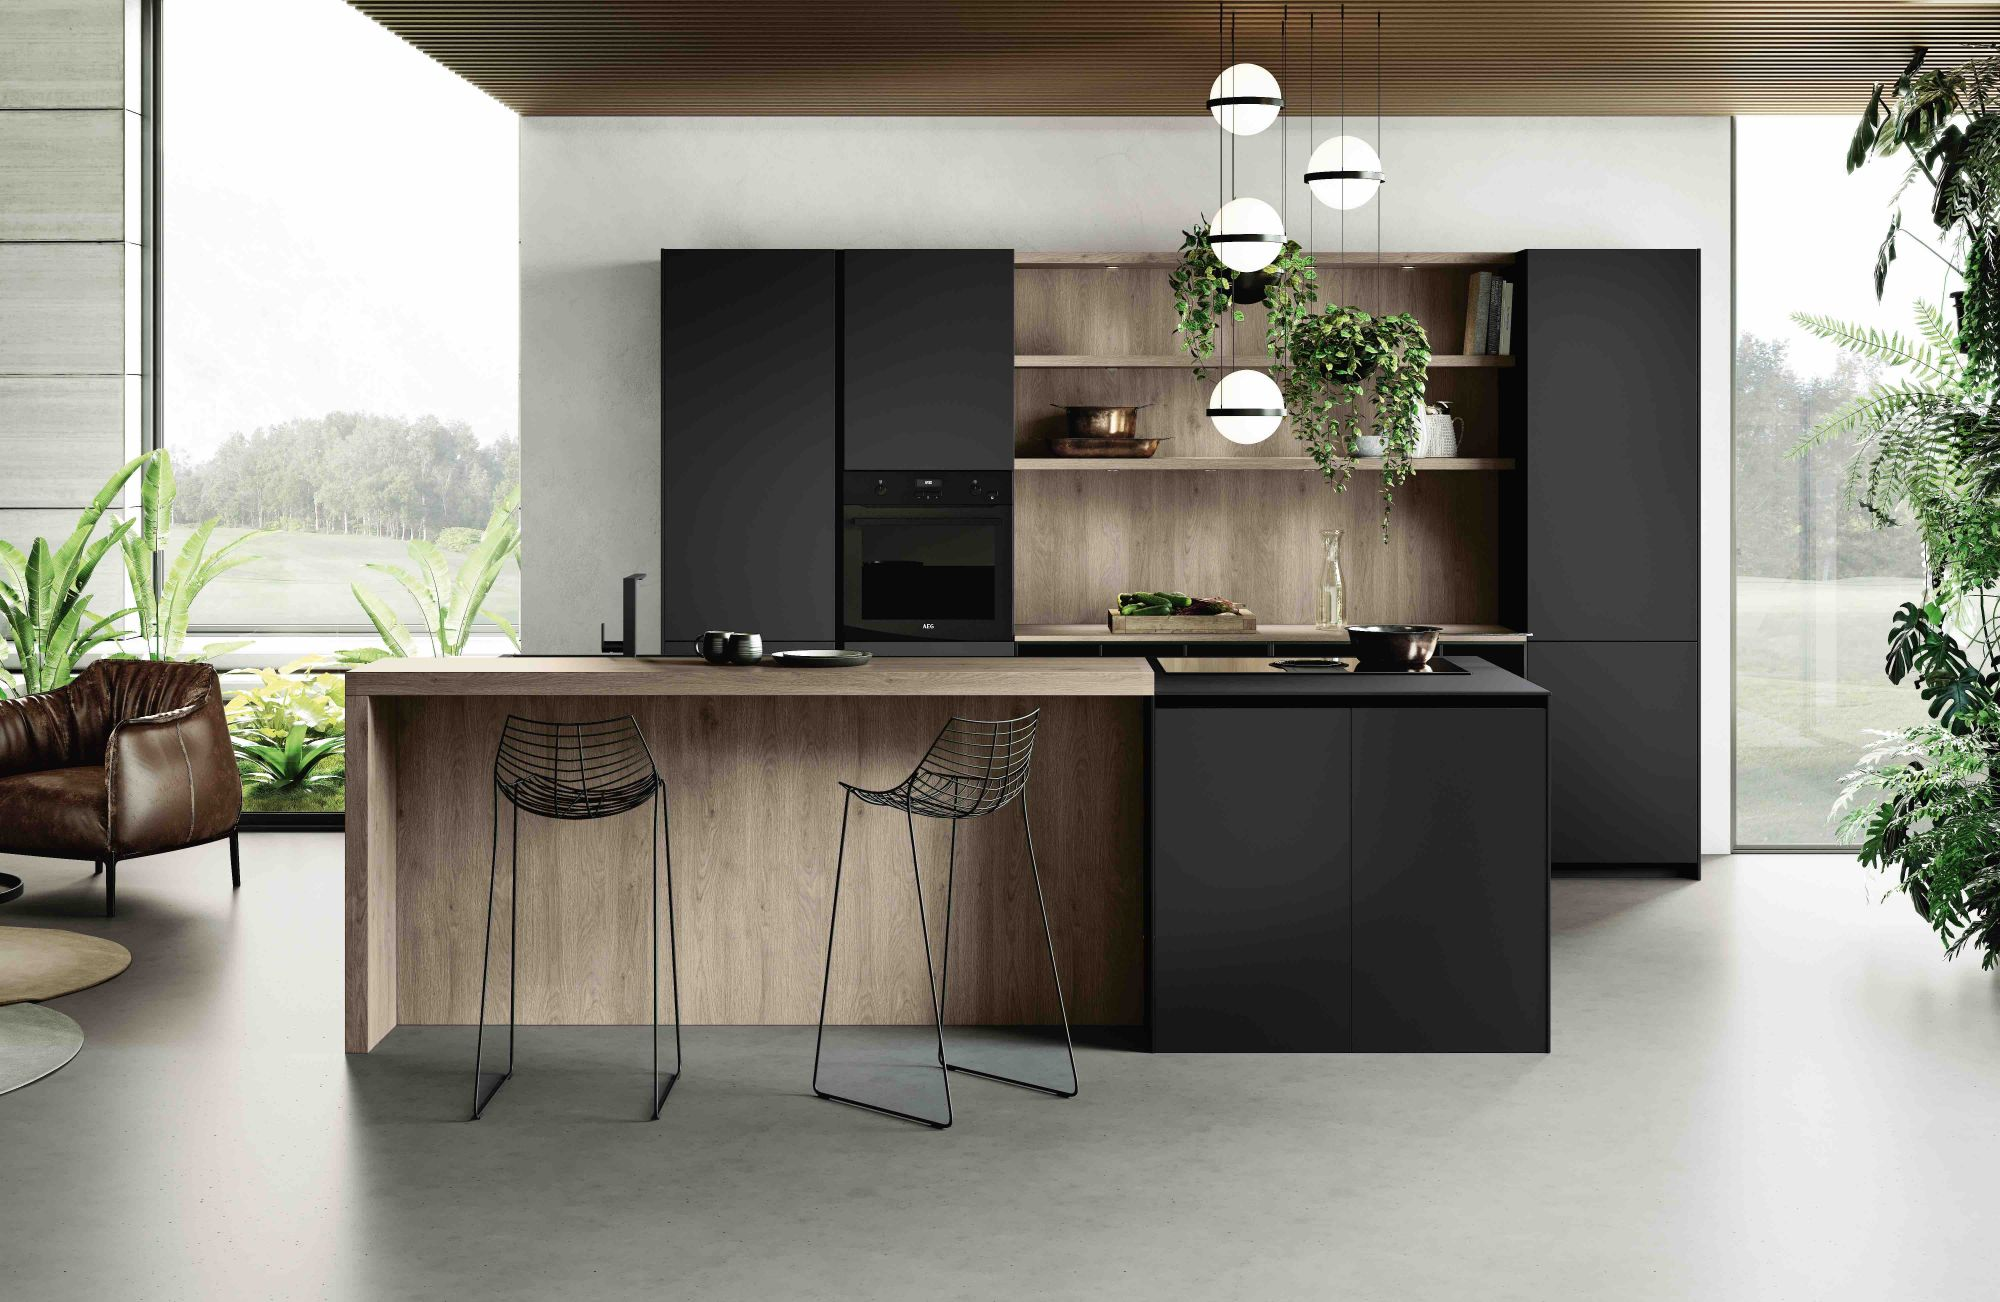 The Loto kitchen system by Miton in black, available at W. Atelier